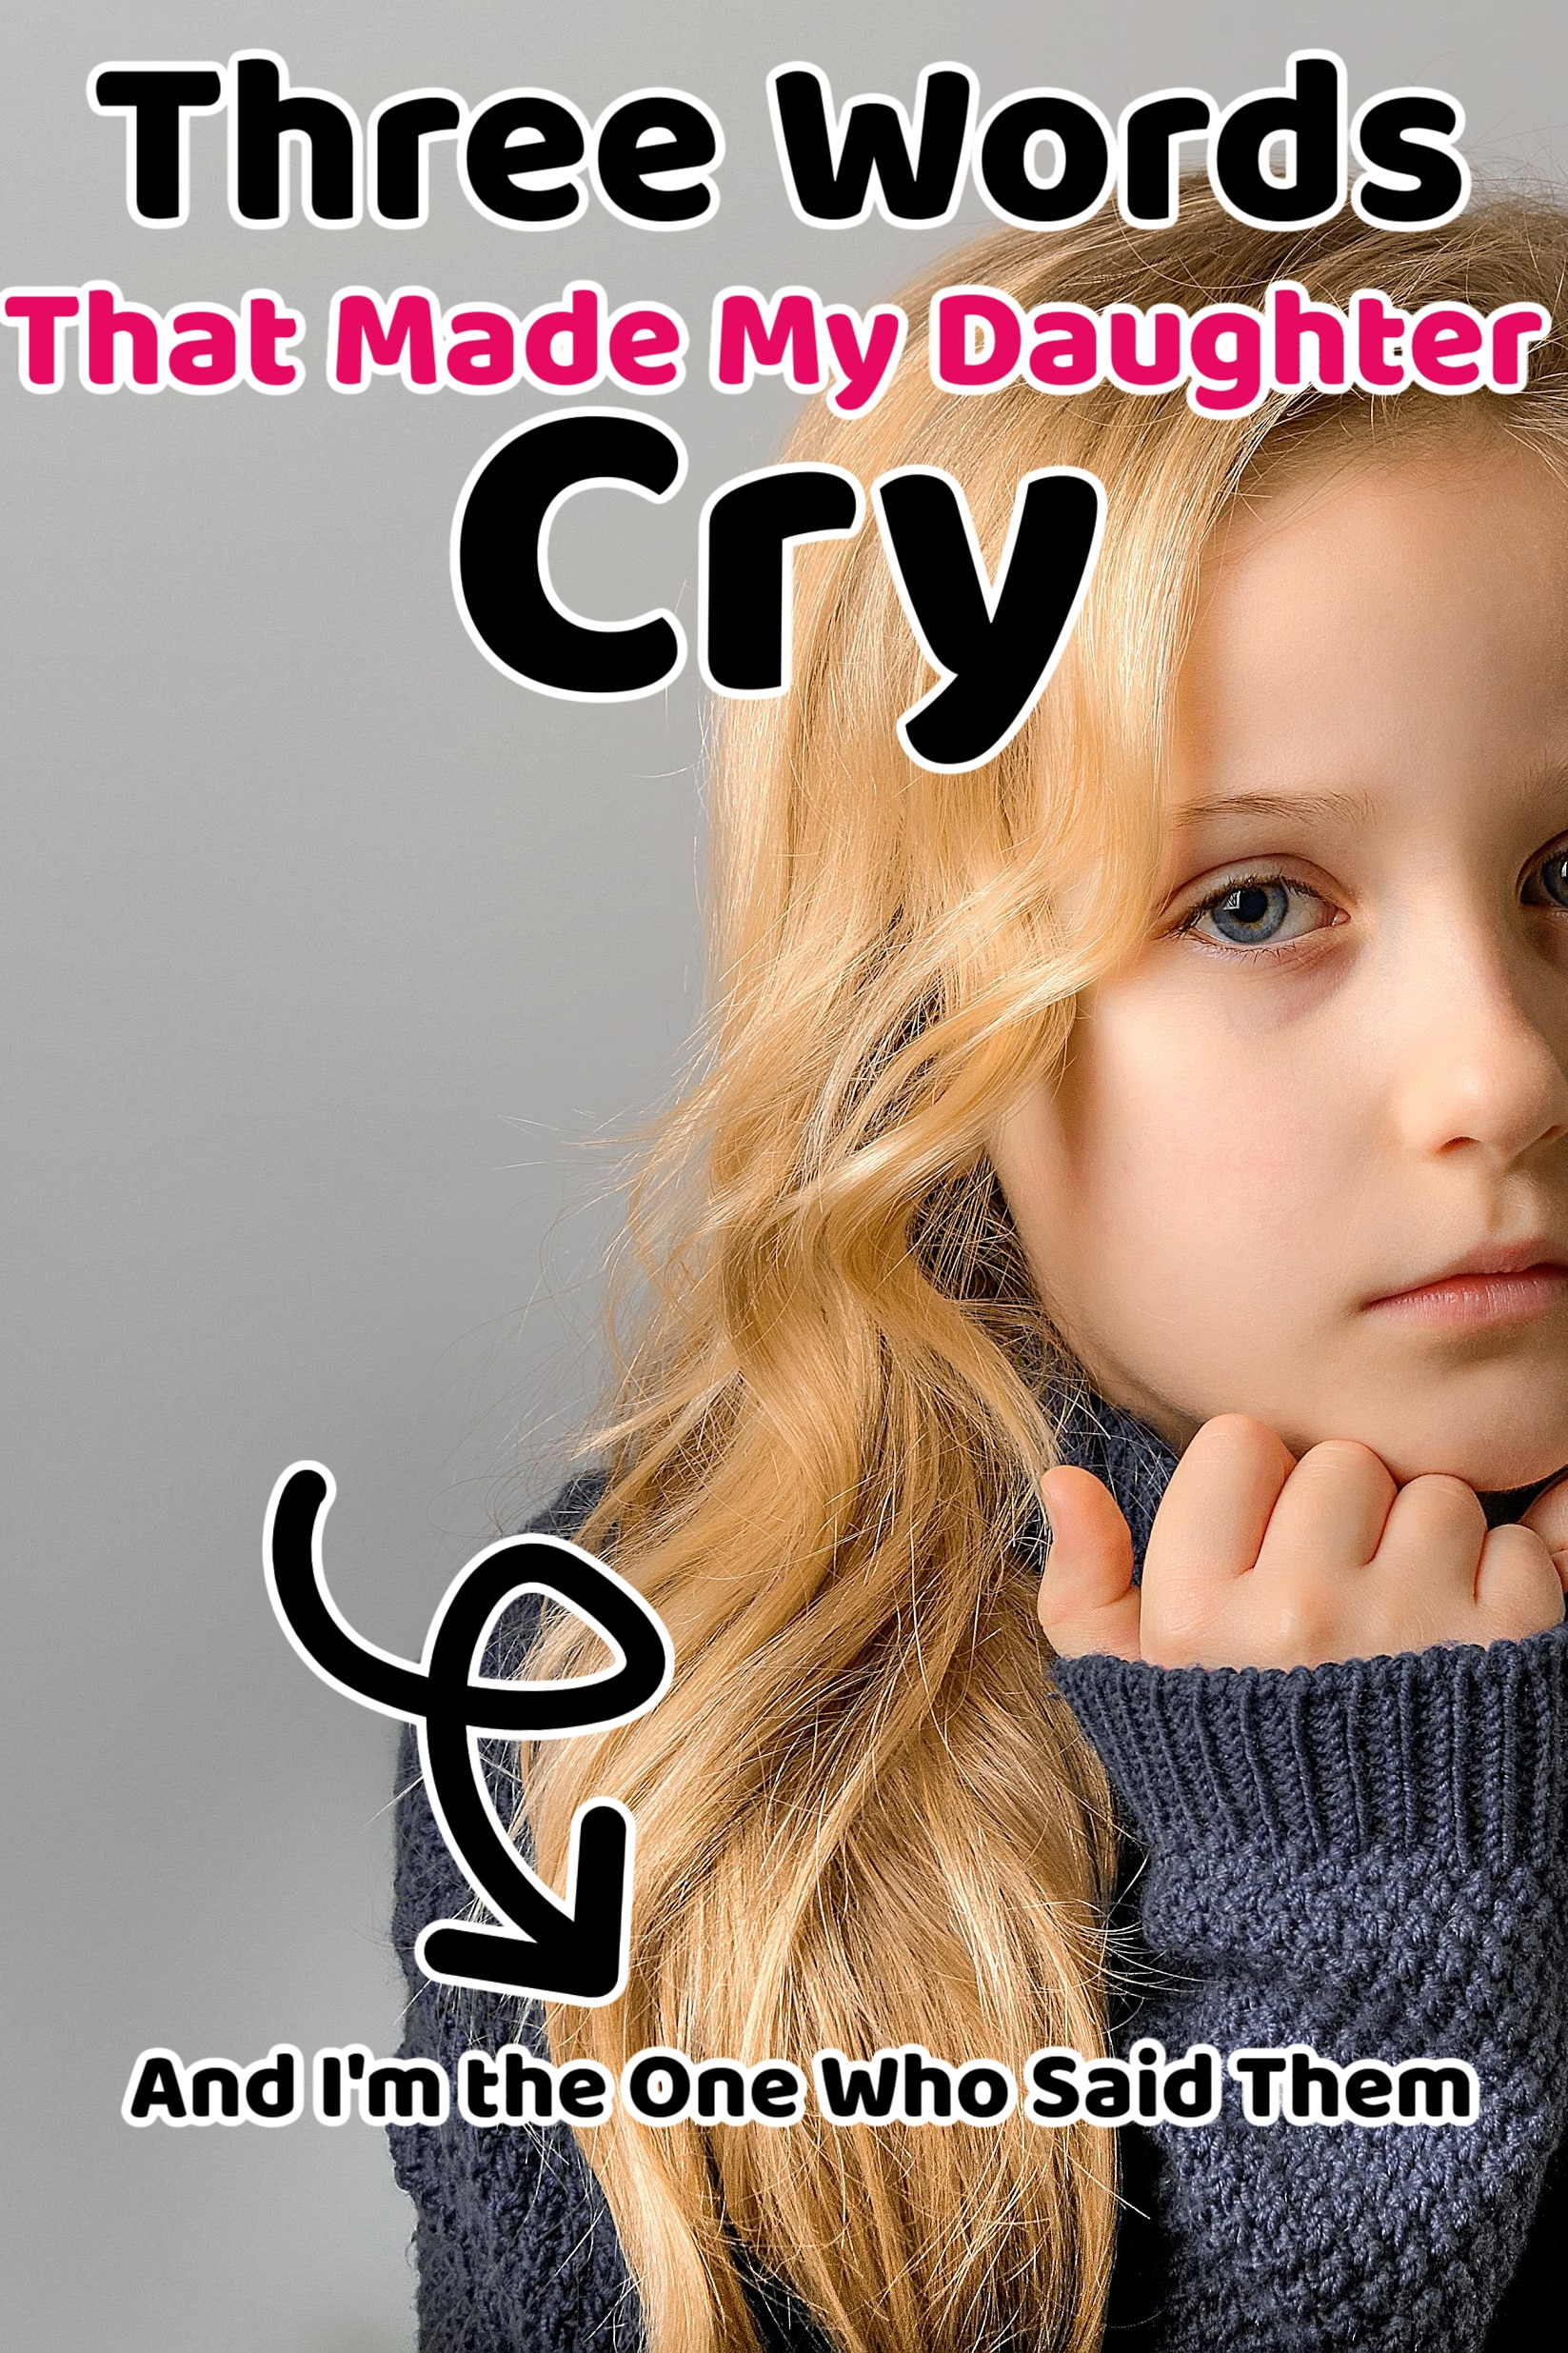 daughter sad because her mom said these three words